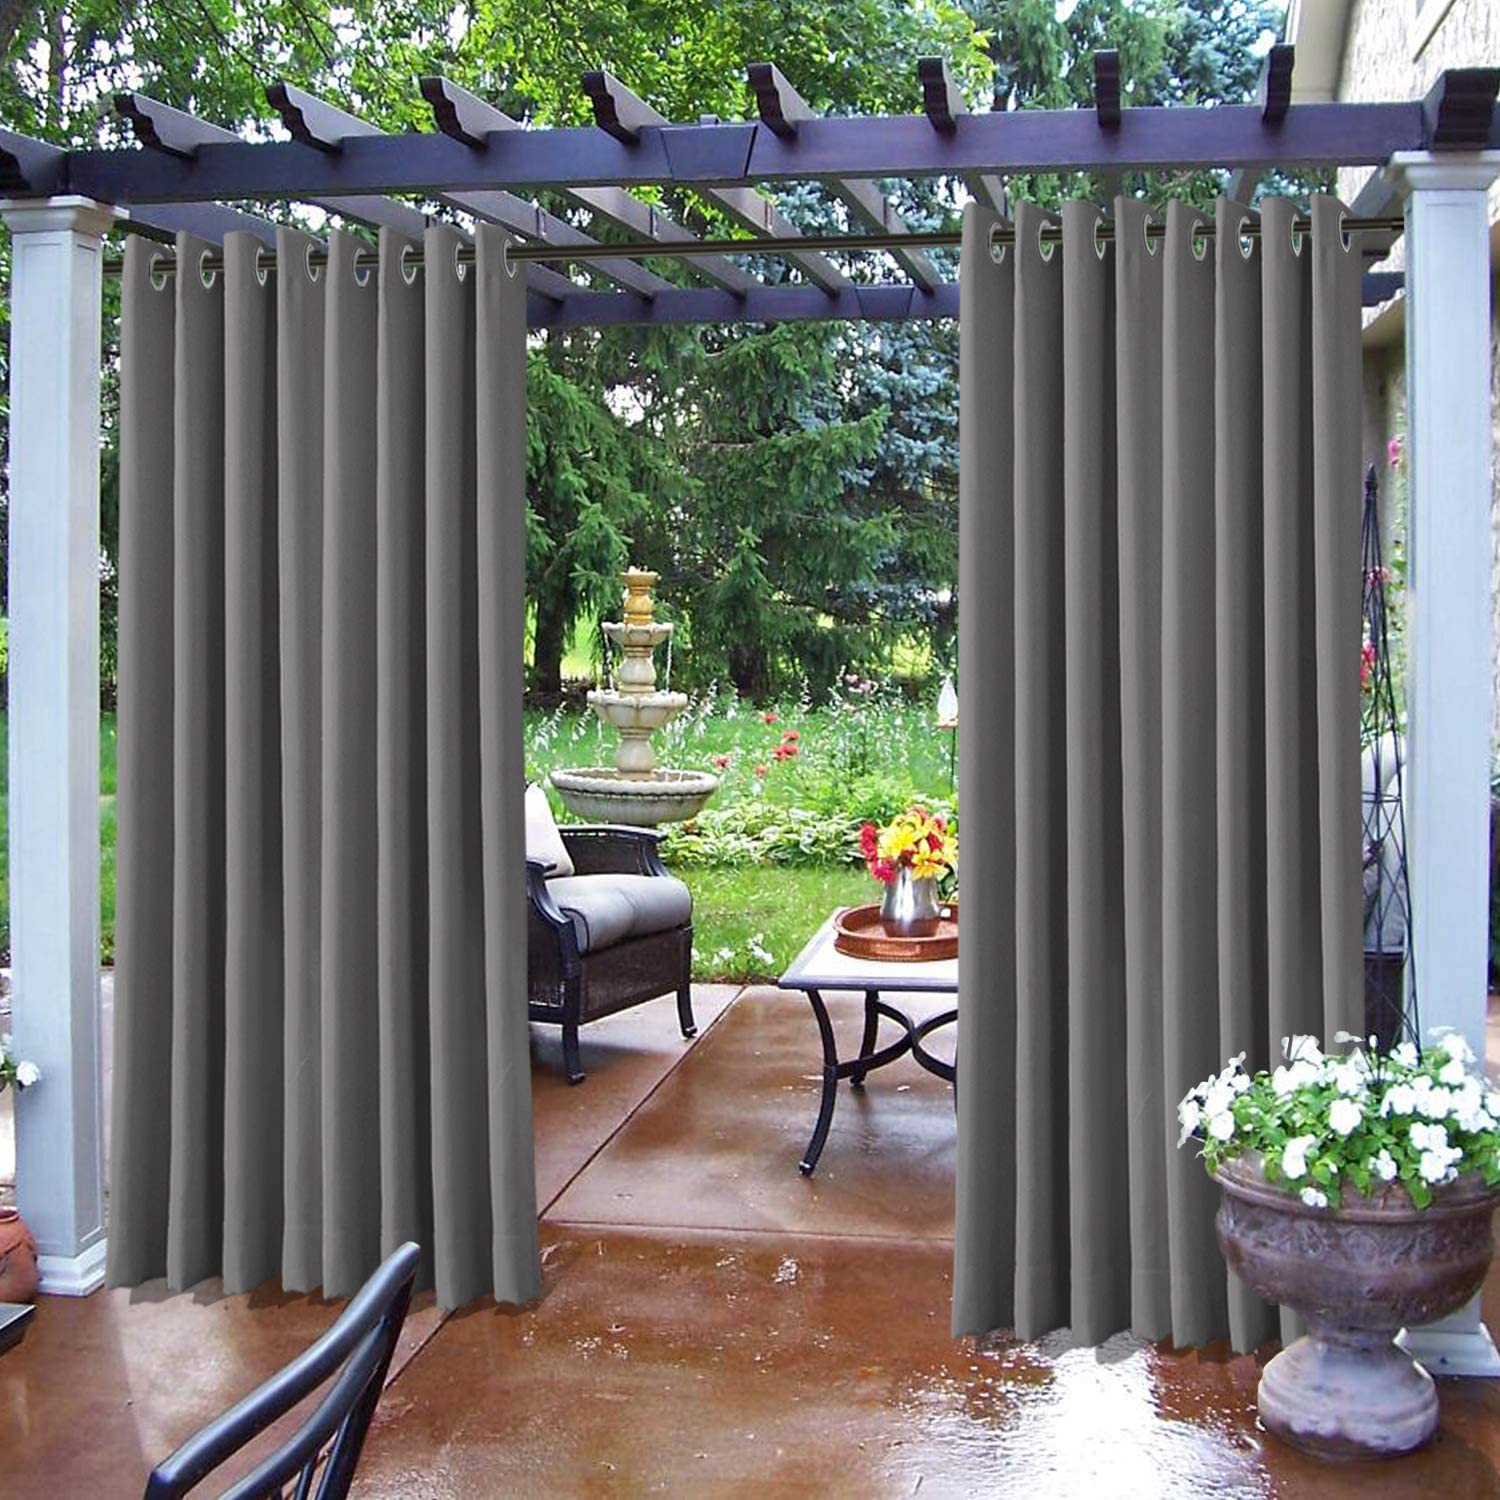 Frelement Outdoor Drapes Waterproof Window Curtains for Patio Cabana Rustproof Grommet 84W x 84L (1 Panel) Privacy Shade Lightproof Thermal Insulated Draperies Grey